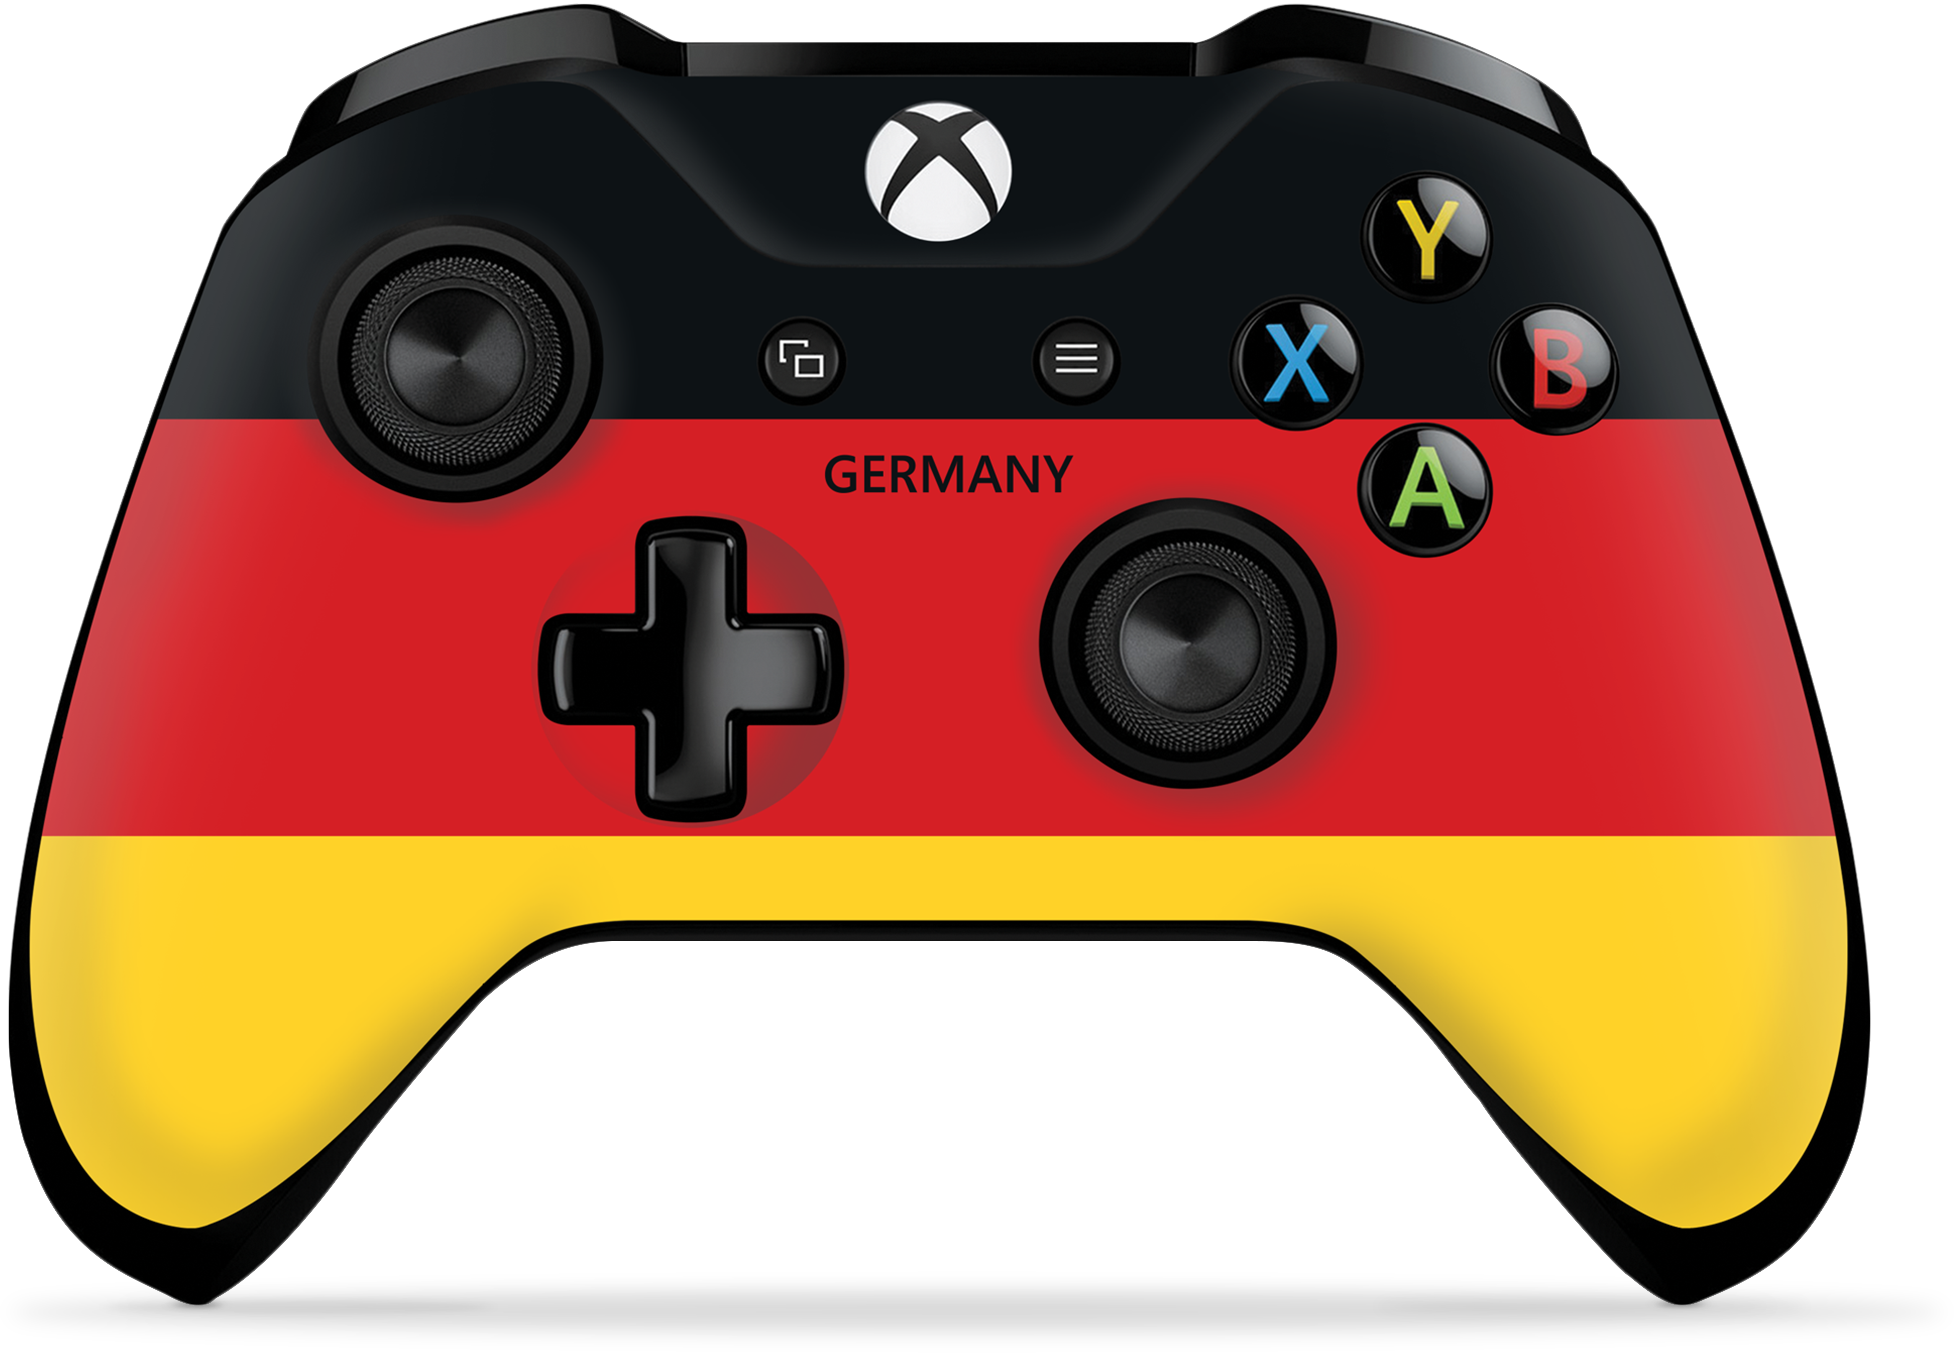 RE1Z4BD?ver=f75c - Controller Gear World's Game Controller Skins (Germany)